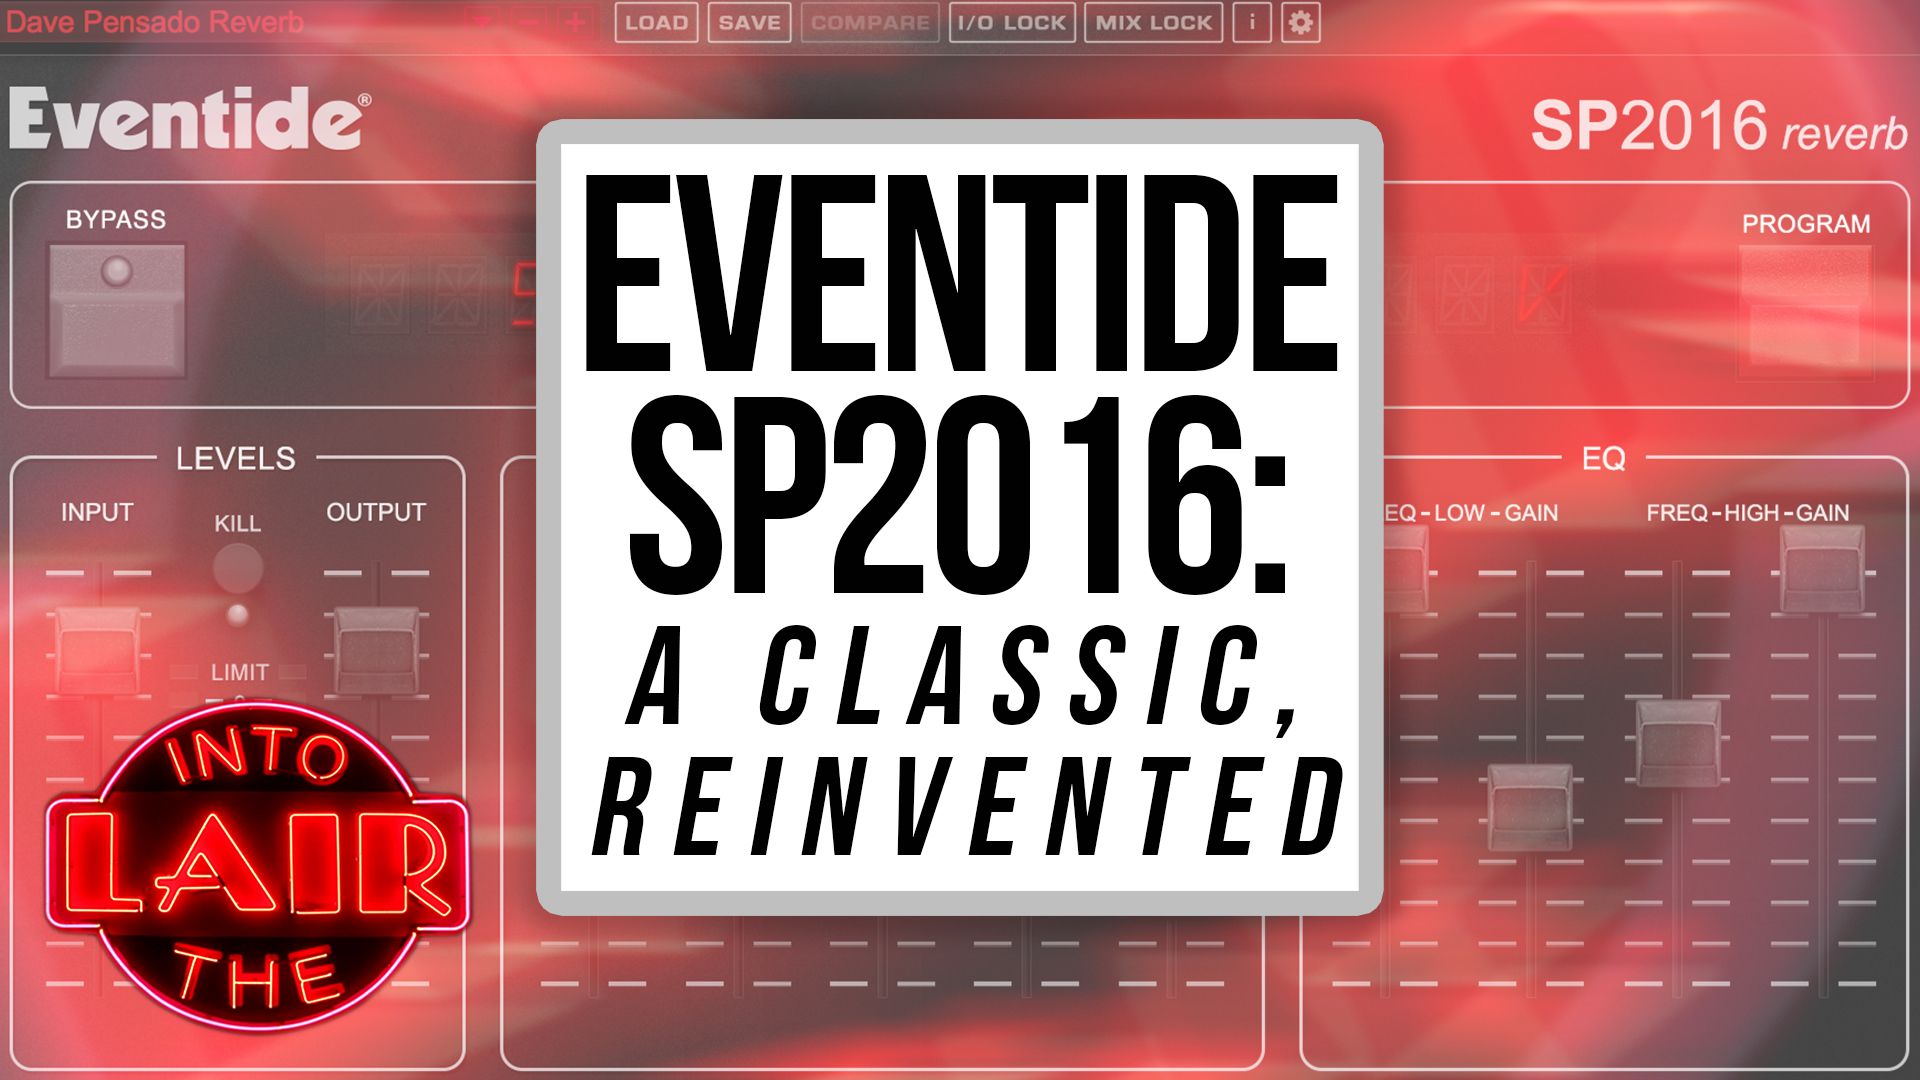 Eventide SP2016: A Classic Reinvented